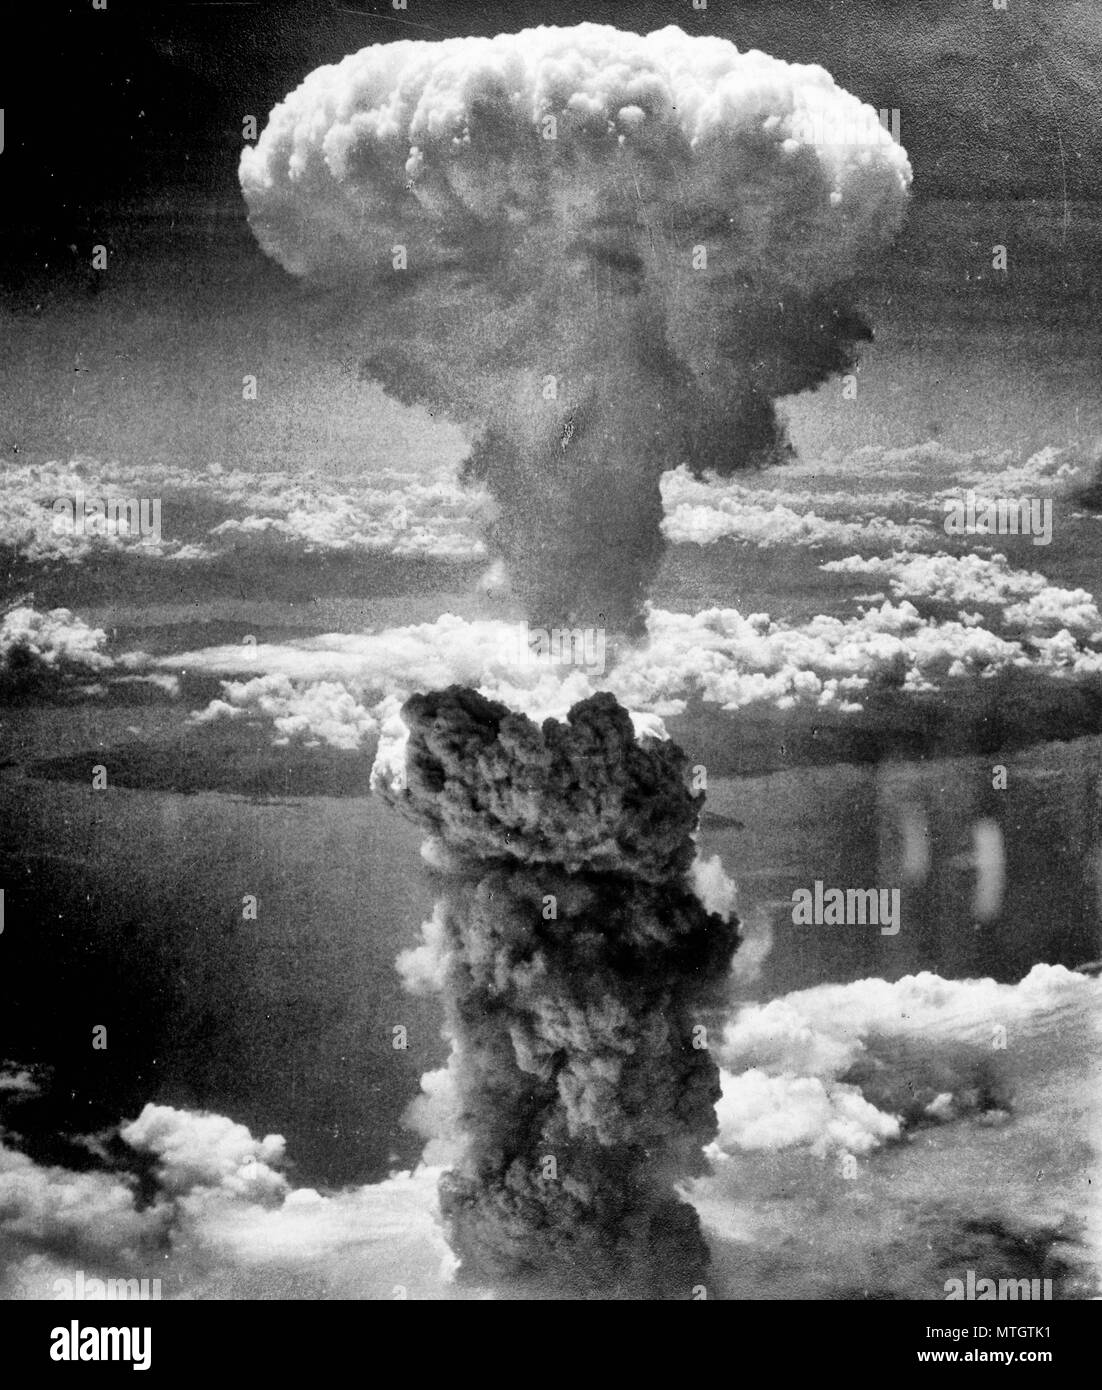 Atomic Cloud Rises Over Nagasaki, Japan - Mushroom cloud above Nagasaki after atomic bombing on August 9, 1945. Taken from the north west. - Stock Image